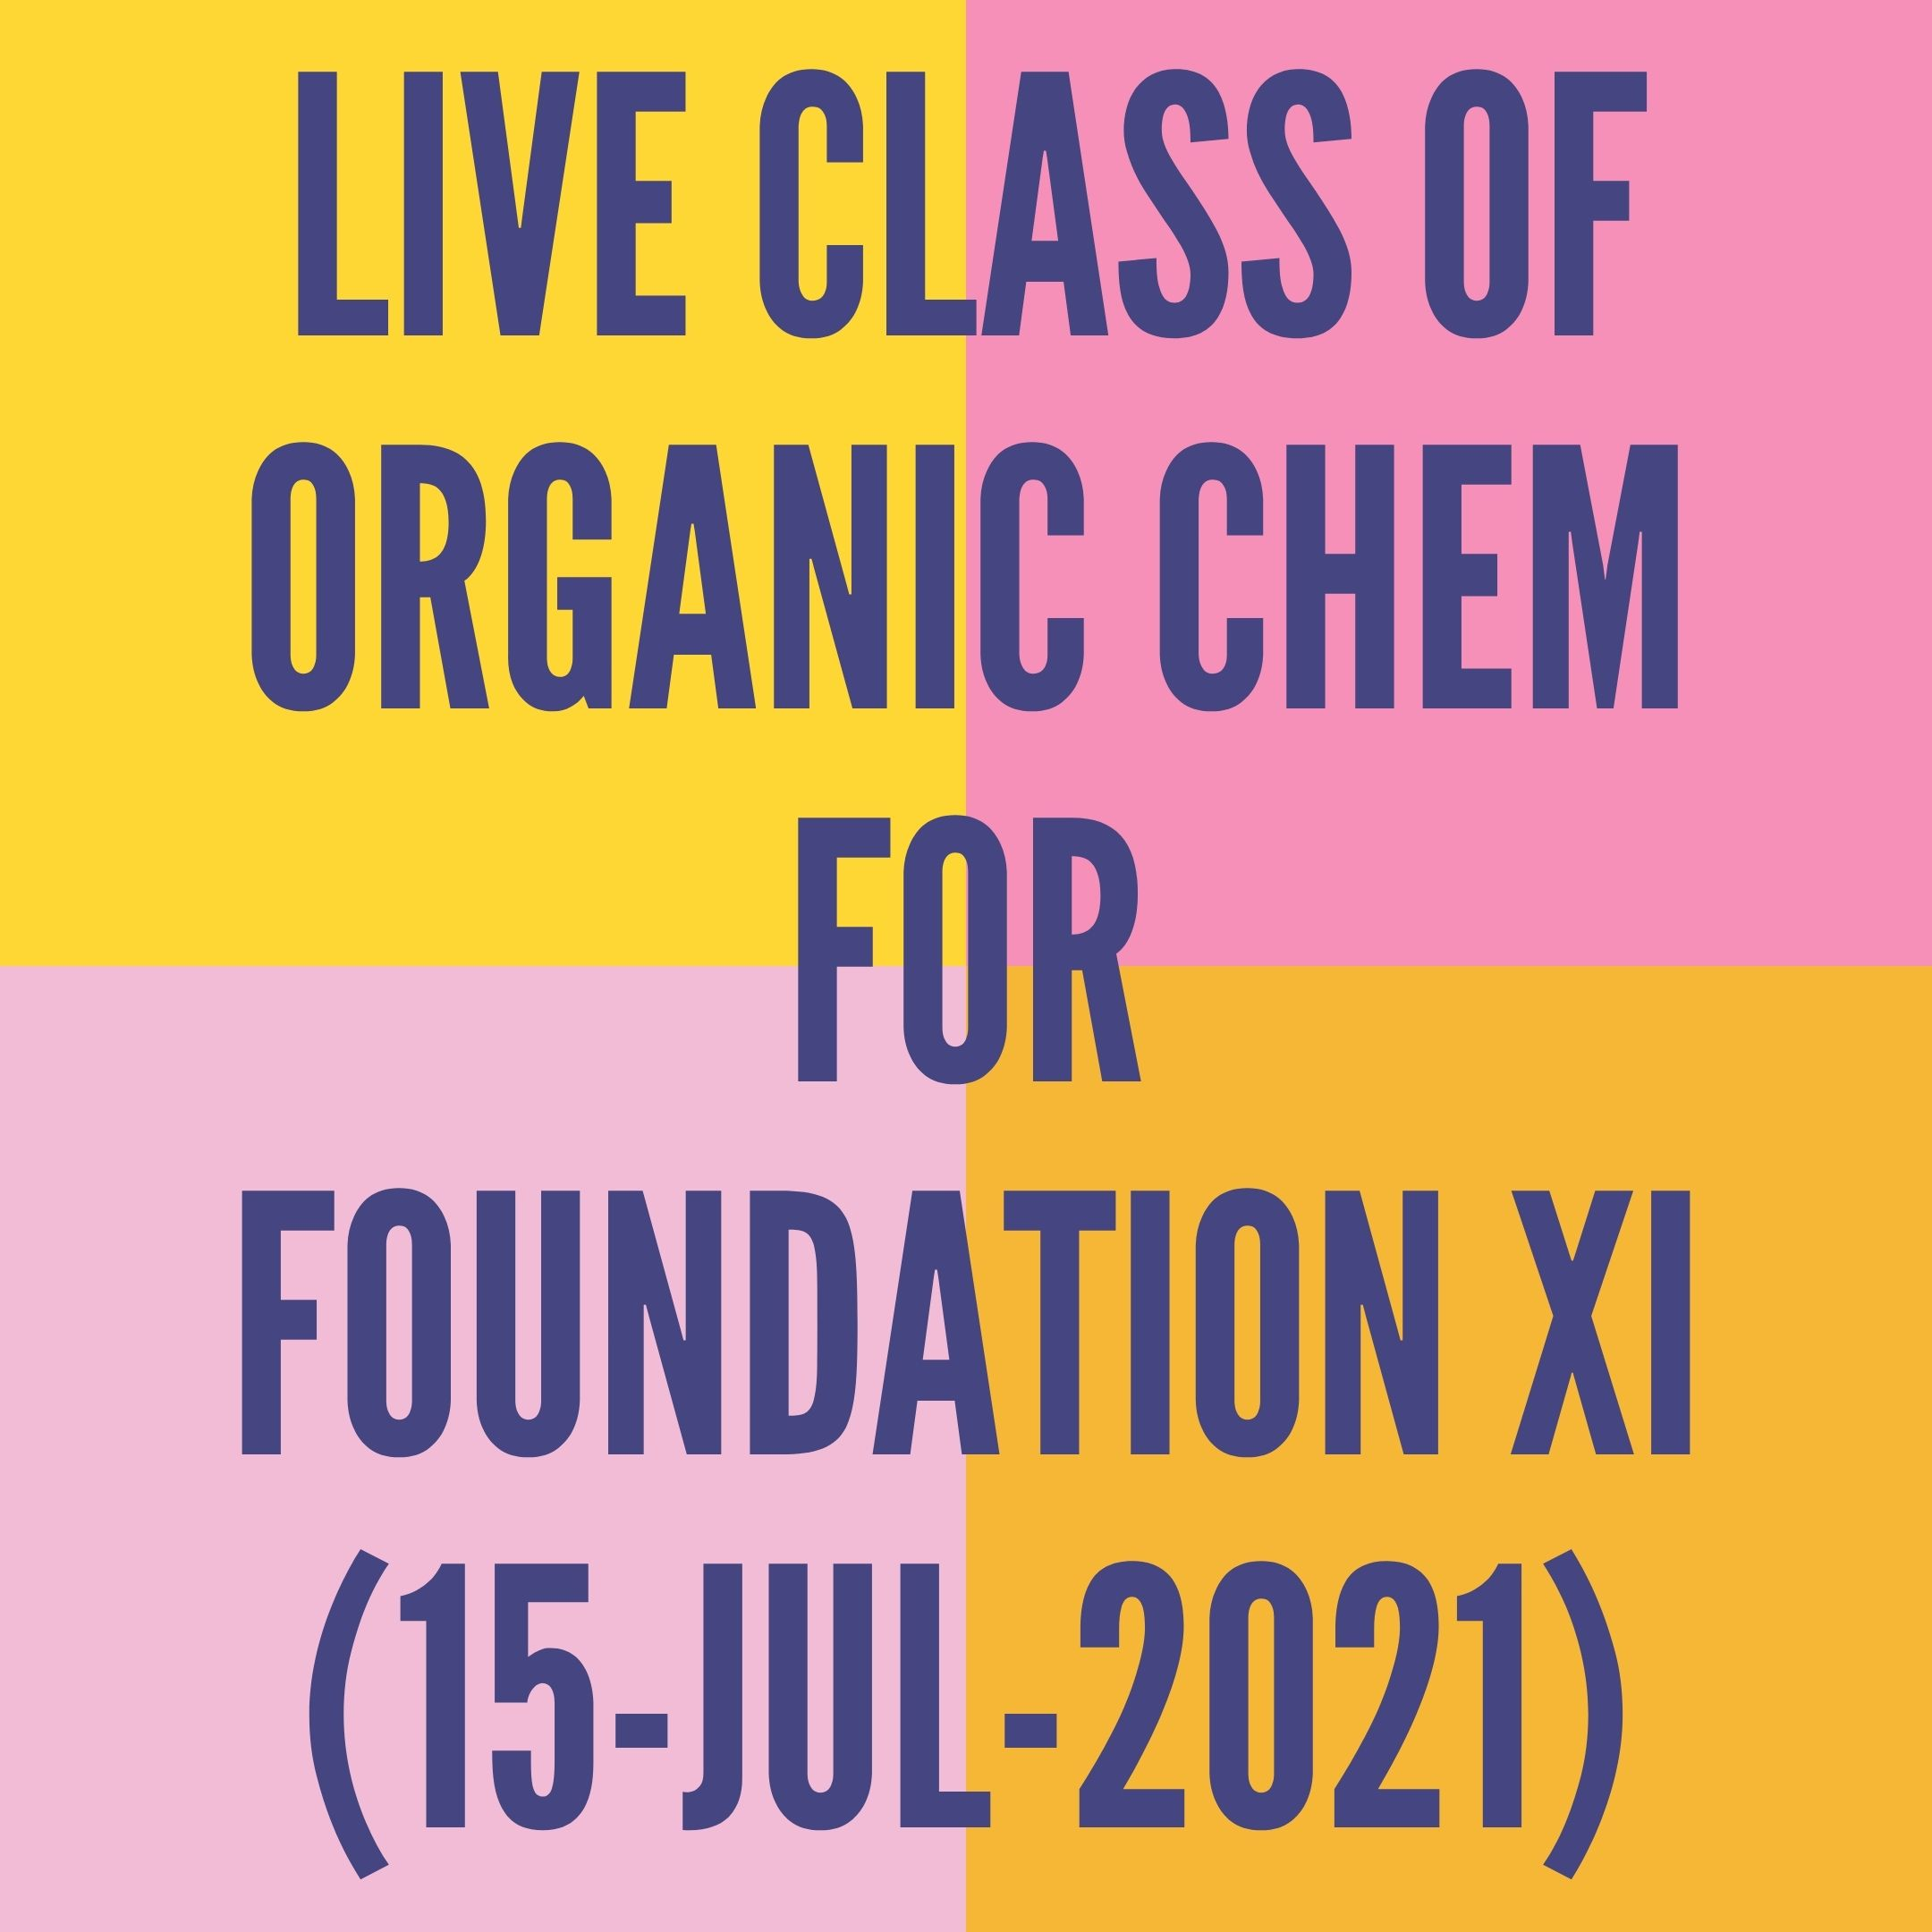 LIVE CLASS OF ORGANIC CHEMISTRY FOR FOUNDATION XI (15-JUL-2021) NOMENCLATURE